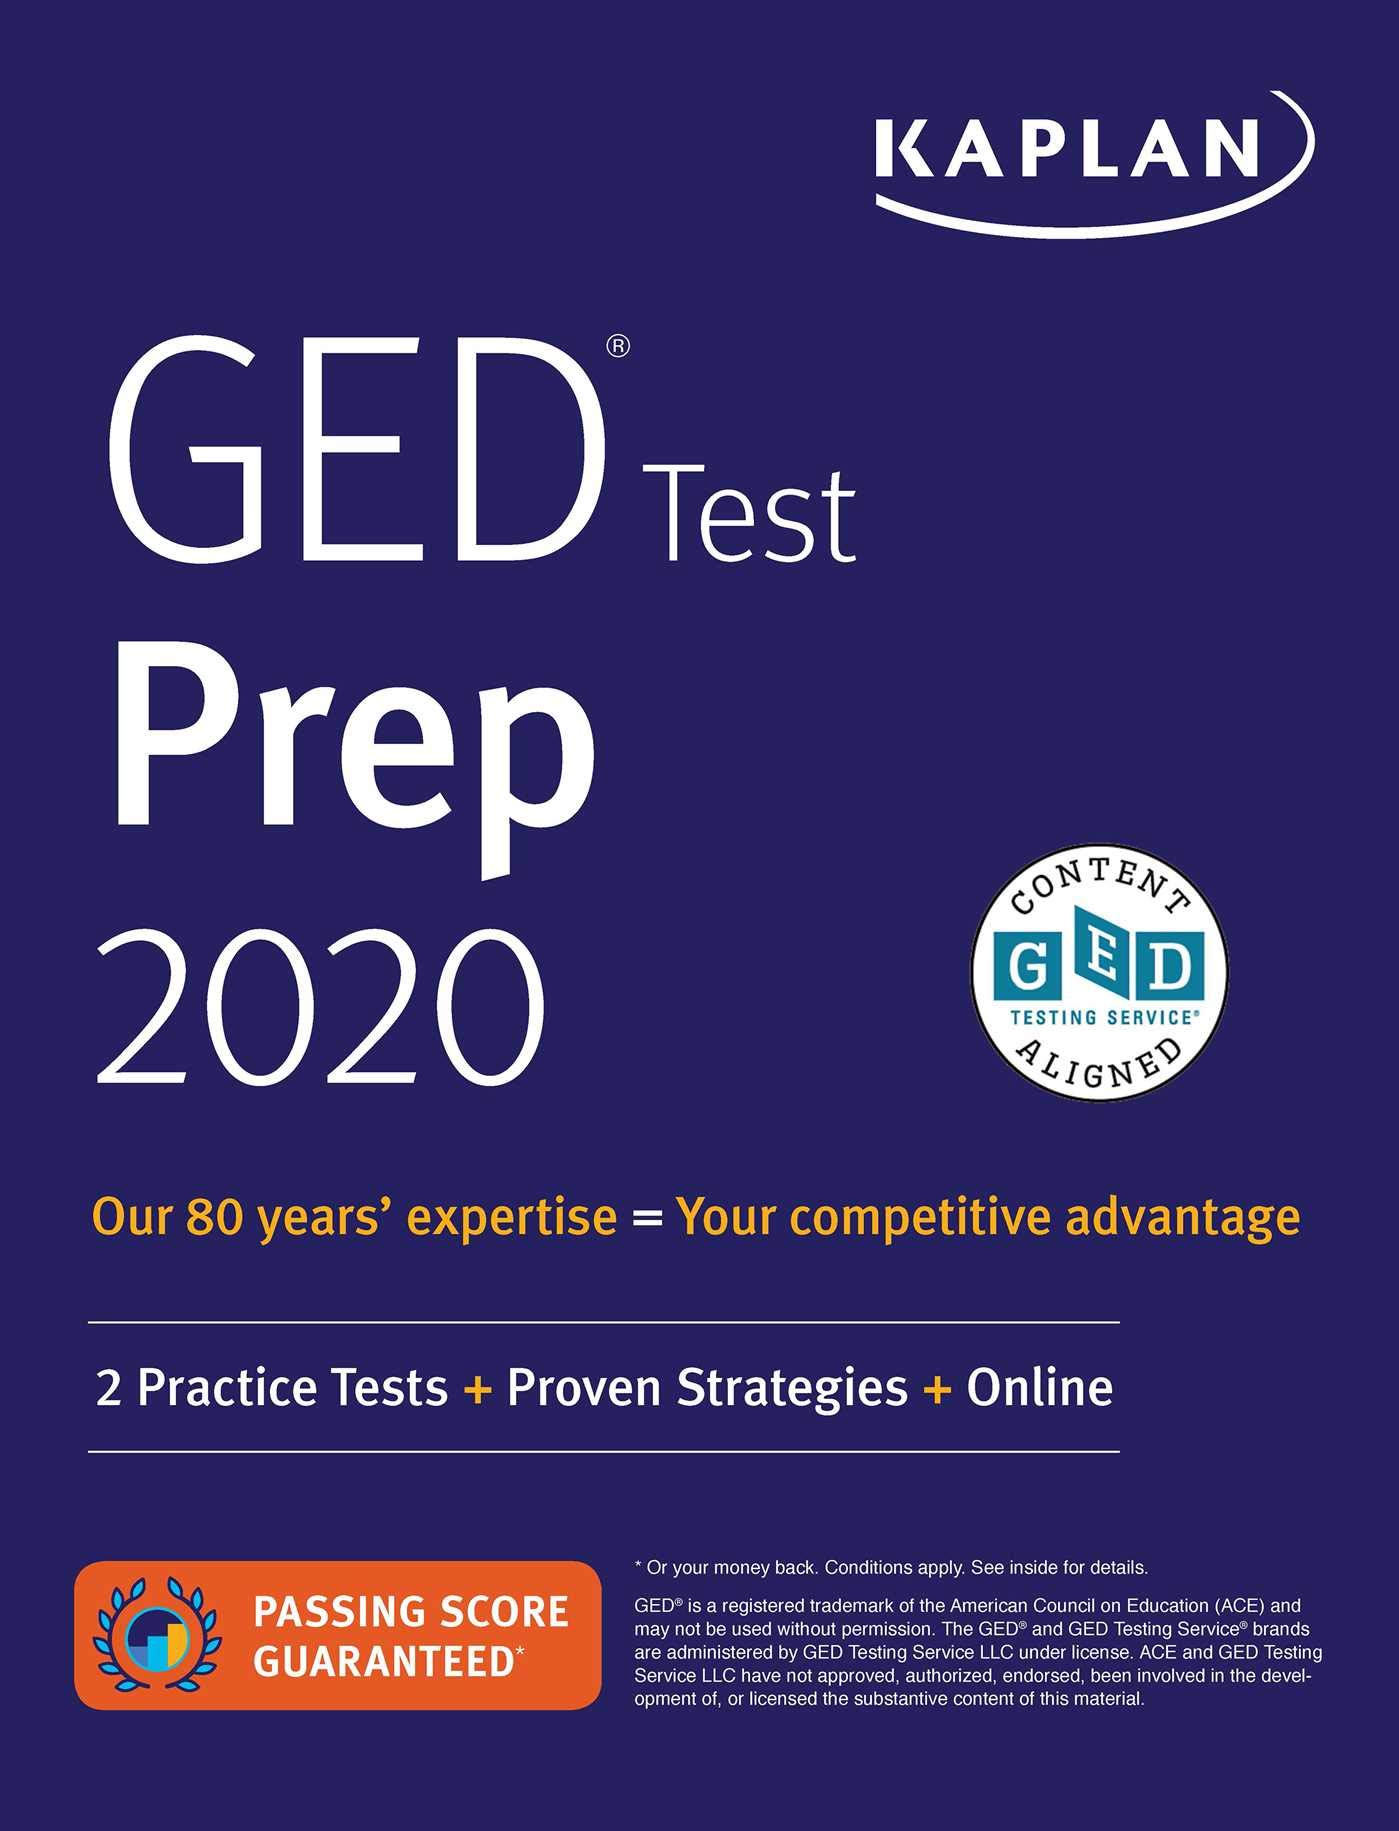 Get Your Ged Online >> Ged Test Prep 2020 2 Practice Tests Proven Strategies